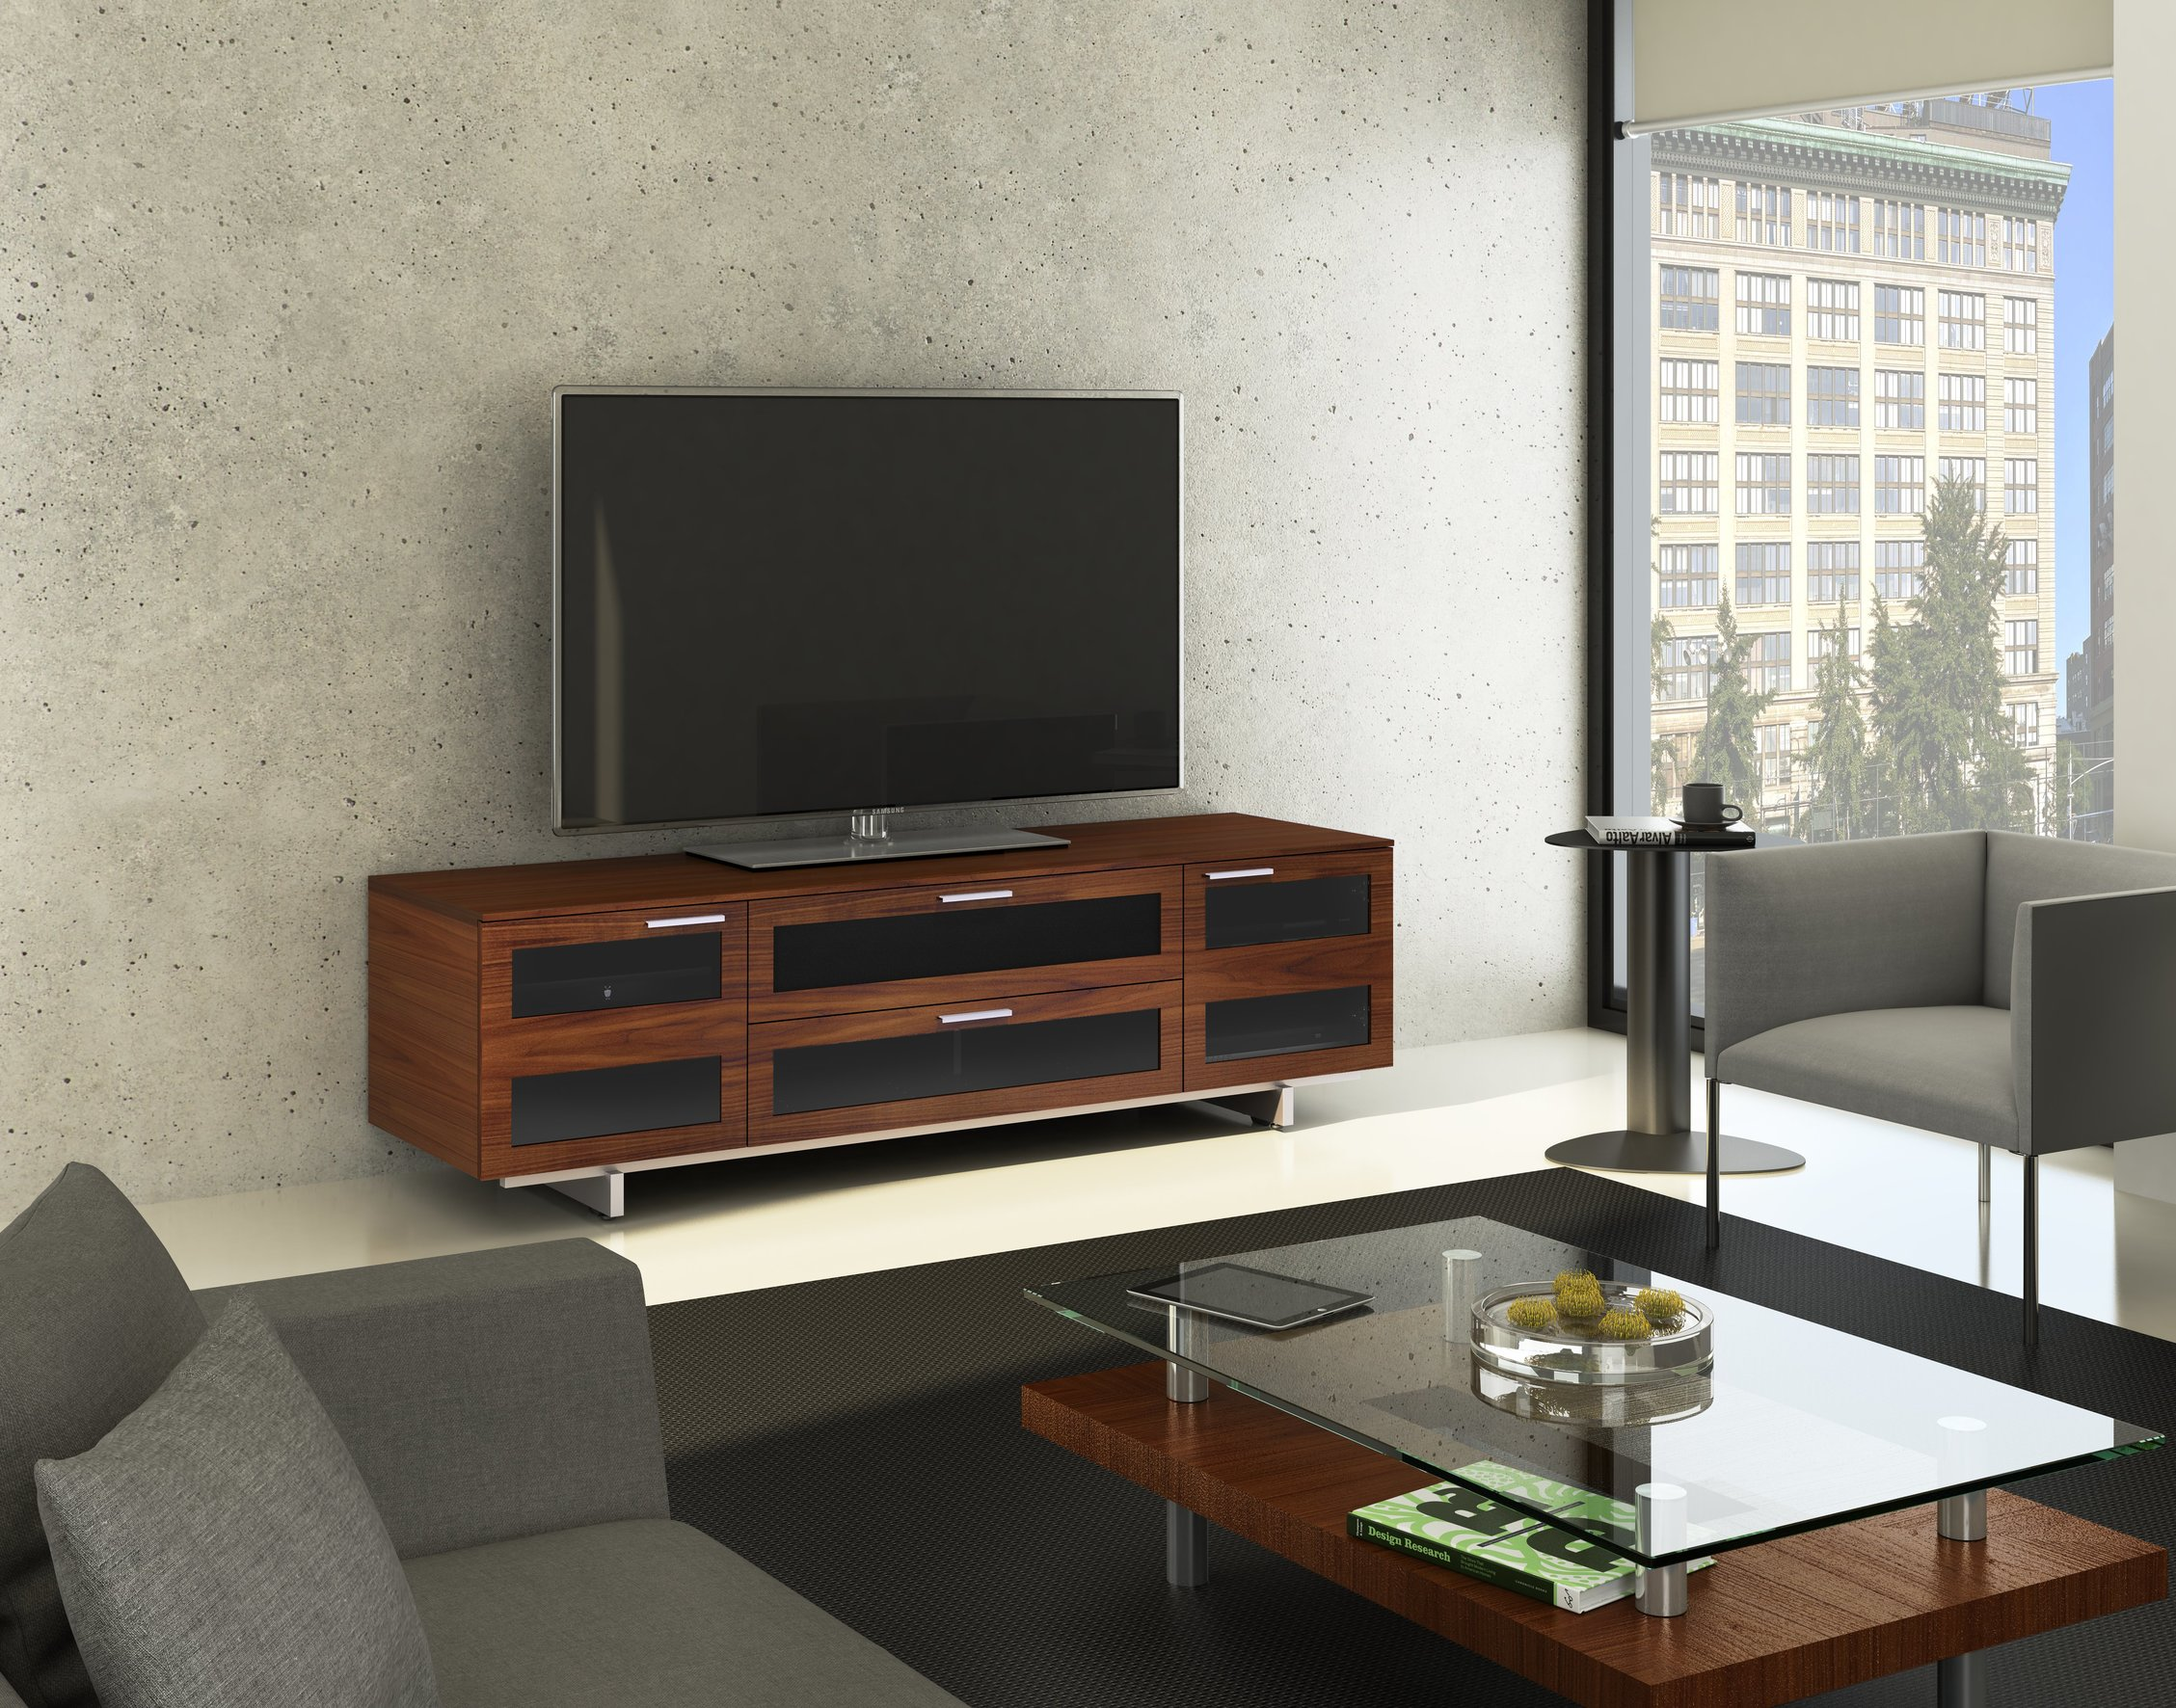 Bdi Furniture Owners Avs Home Theater Discussions And